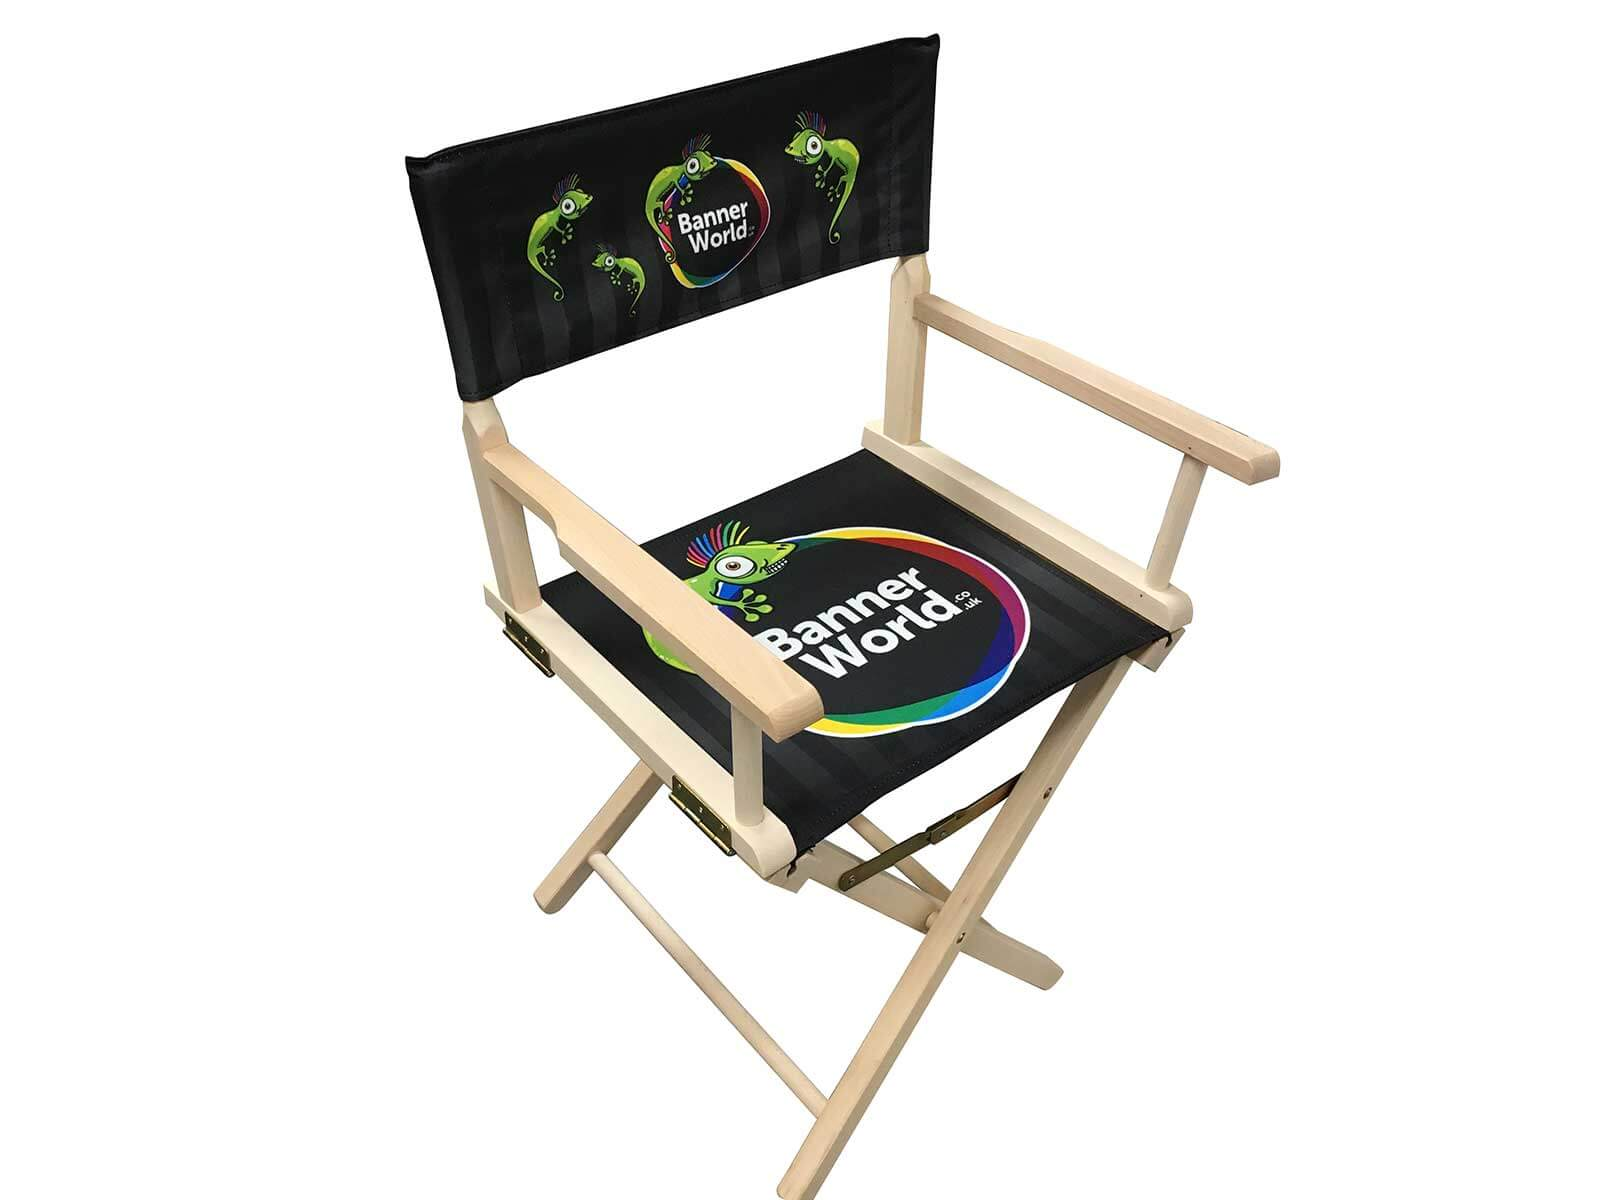 Personalised Directors Chair Full Colour Printed from your design